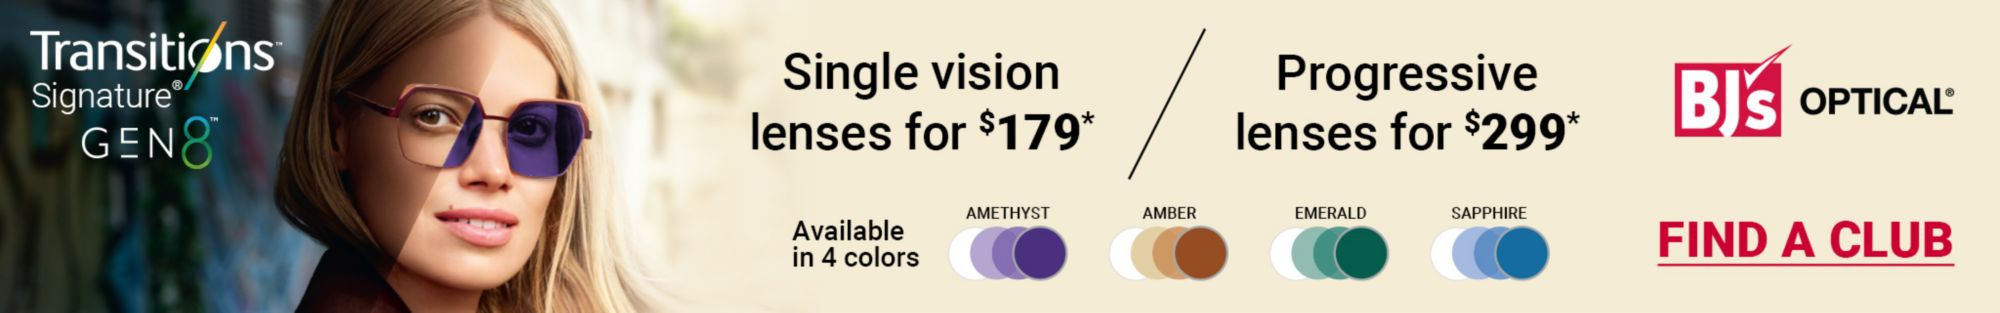 BJ's Optical. Single vision lenses for 179 dollars*. Progressive lenses for 299 dollars*. Available in 4 colors. Find a club